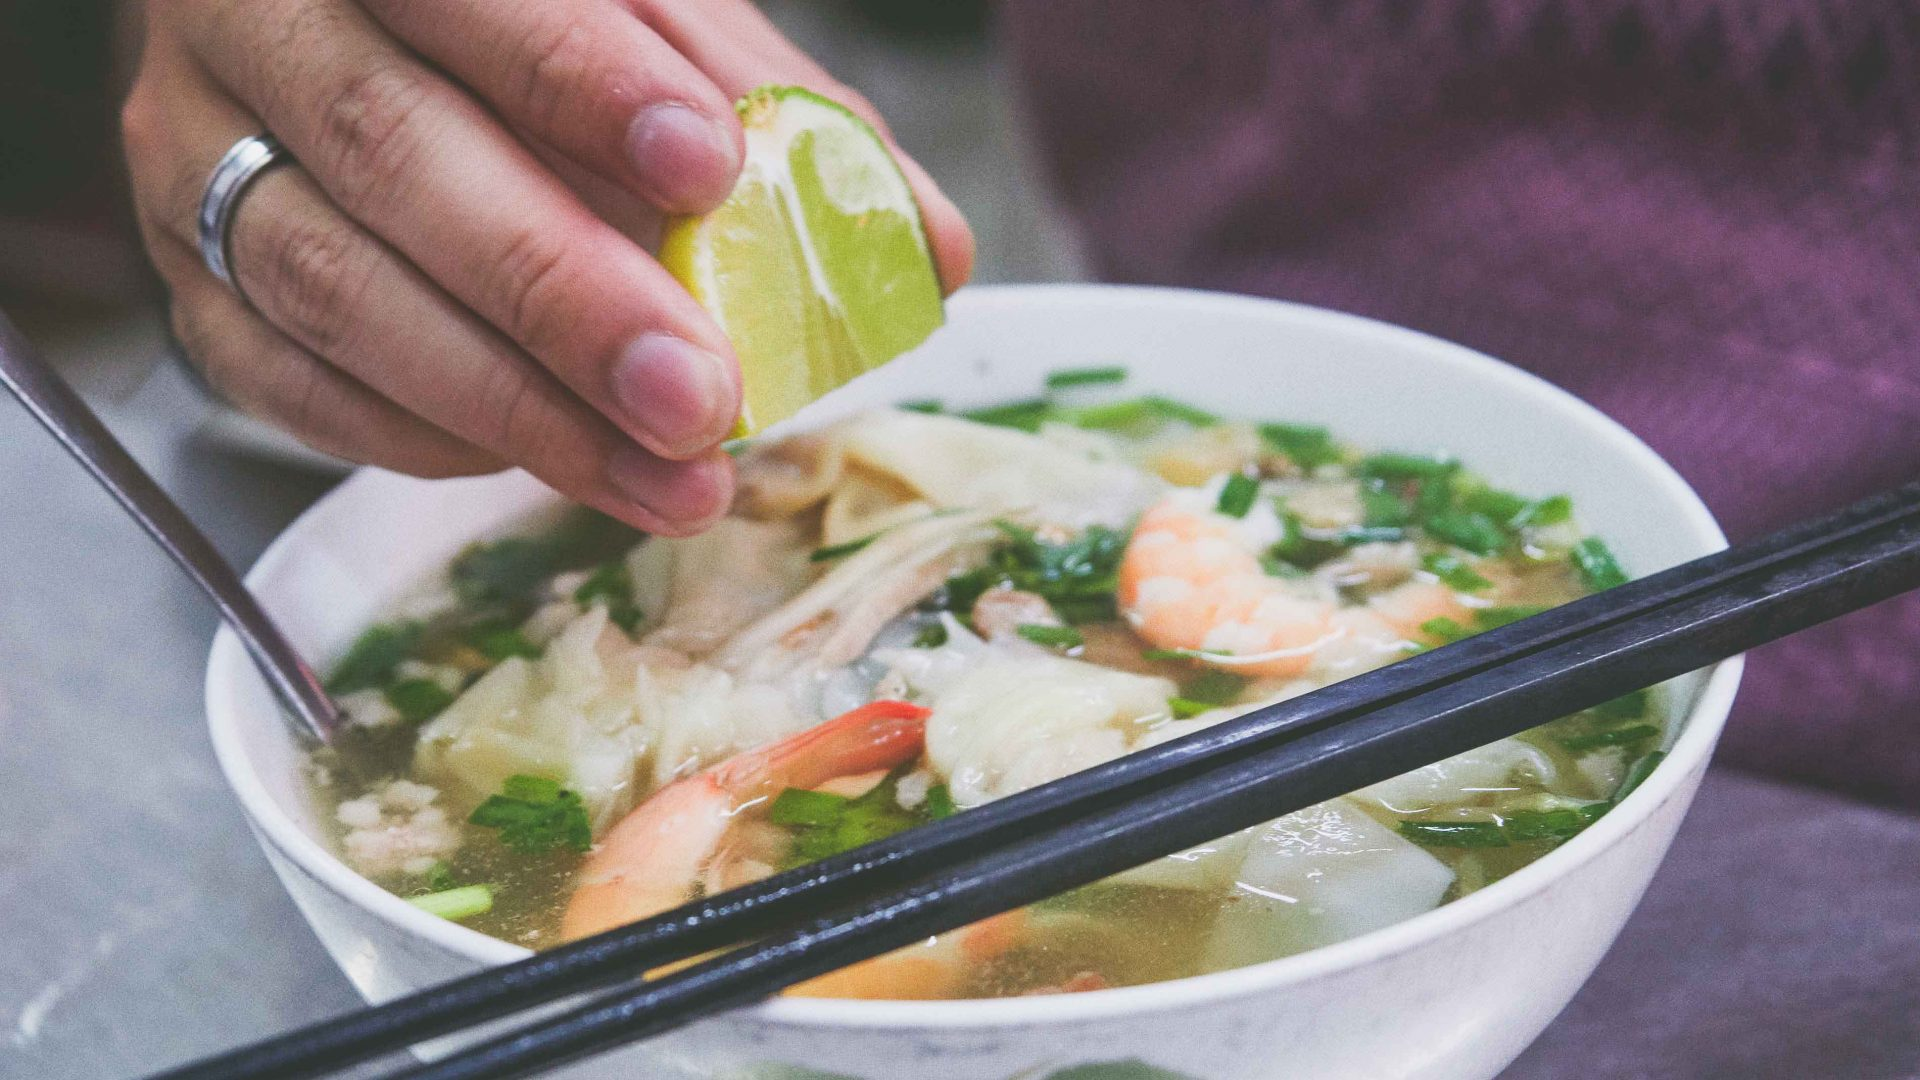 Ho Chi Minh street food: One of the legendary bowls of hu tieu nam vang noodle soup at Vo Thi Ngoc Nhung's food cart, Amen.